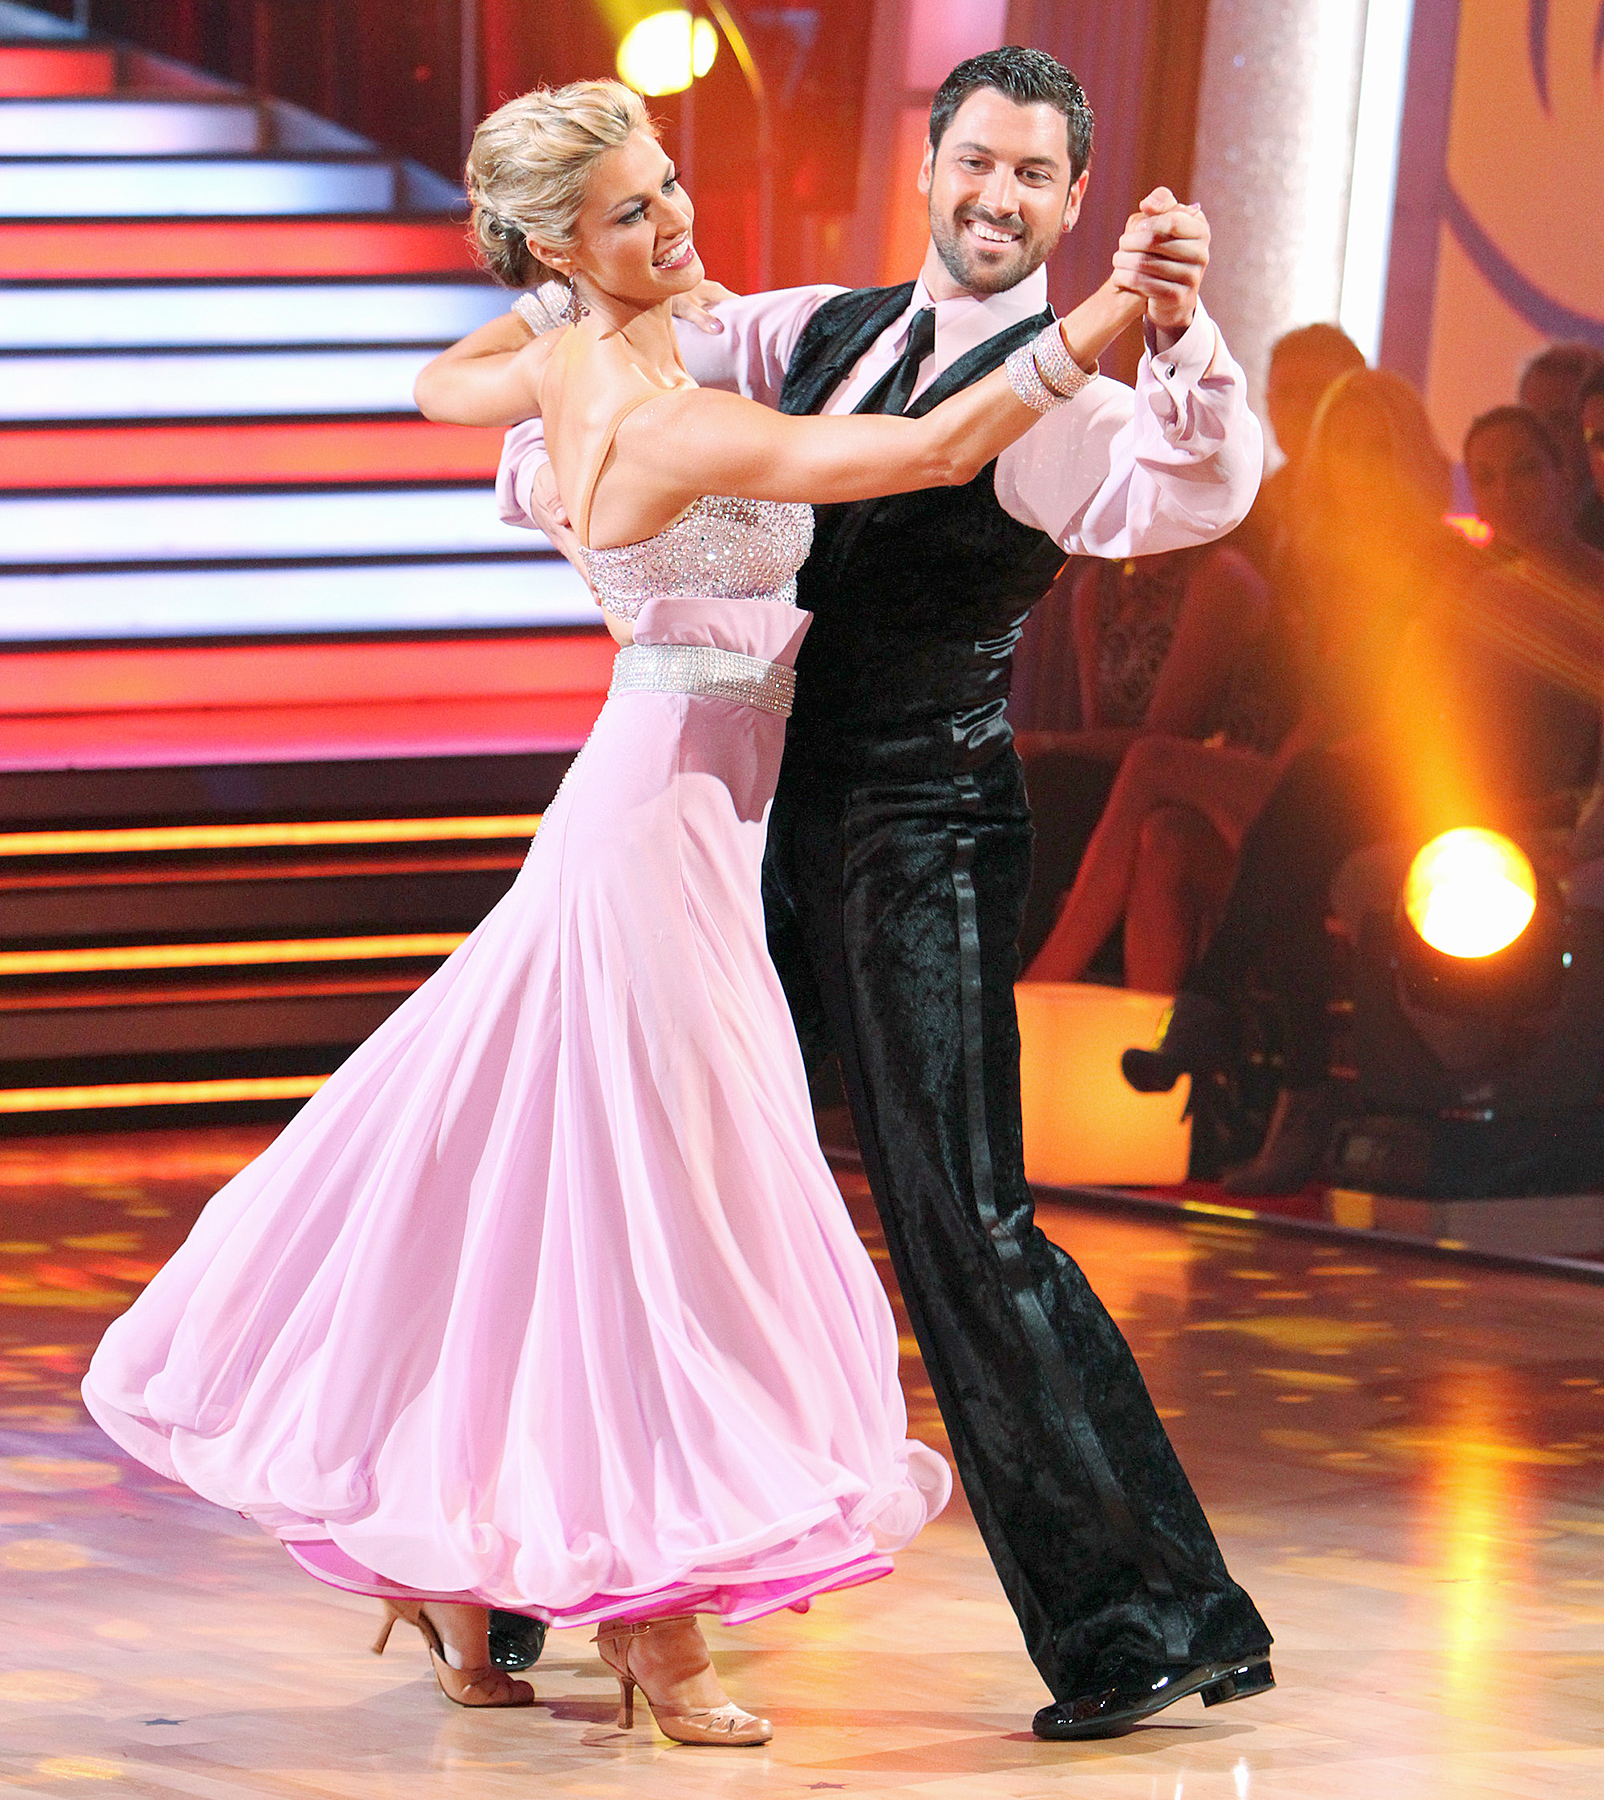 Chelsea and mark dancing with the stars hookup